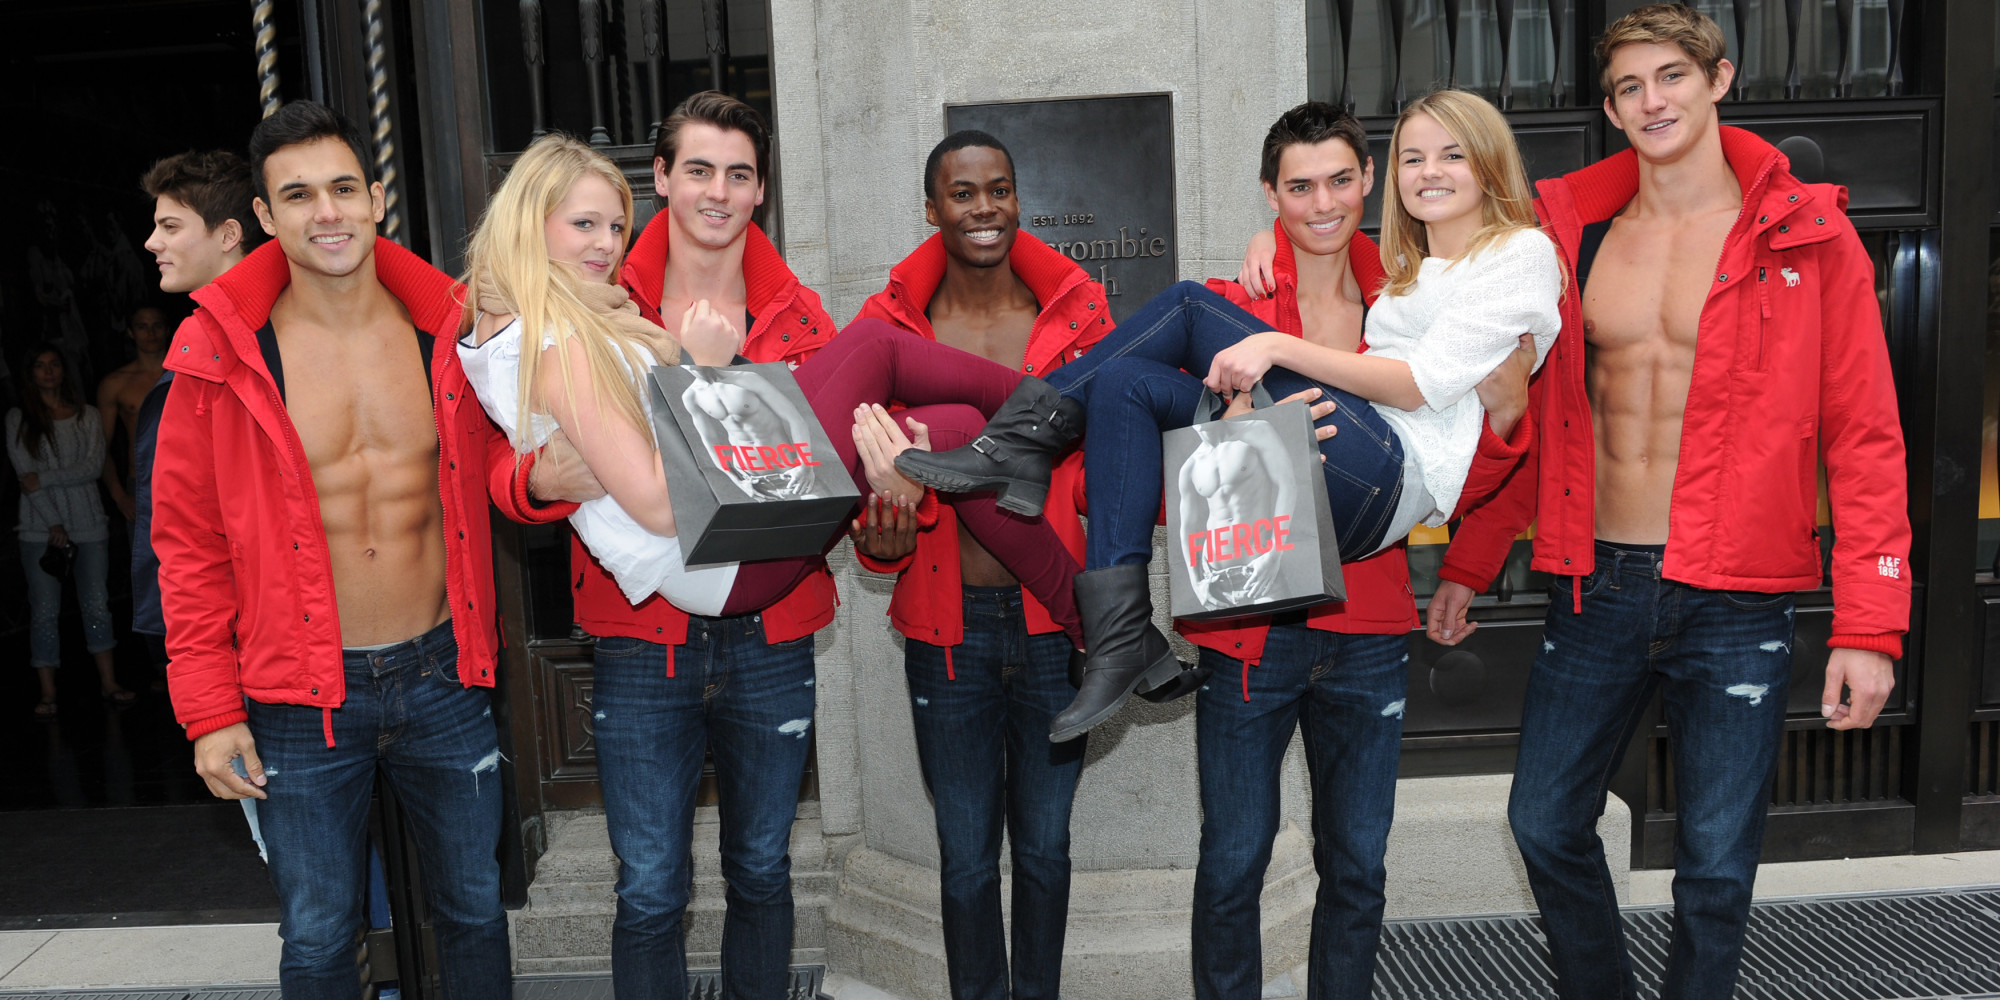 MUNICH, GERMANY - OCTOBER 25:  Young women pose for photographs with male models outside the Abercrombie & Fitch flagship clothing store during the opening of Abercrombie & Fitch Munich flagship store on October 25, 2012 in Munich, Germany.  (Photo by Hannes Magerstaedt/Getty Images)